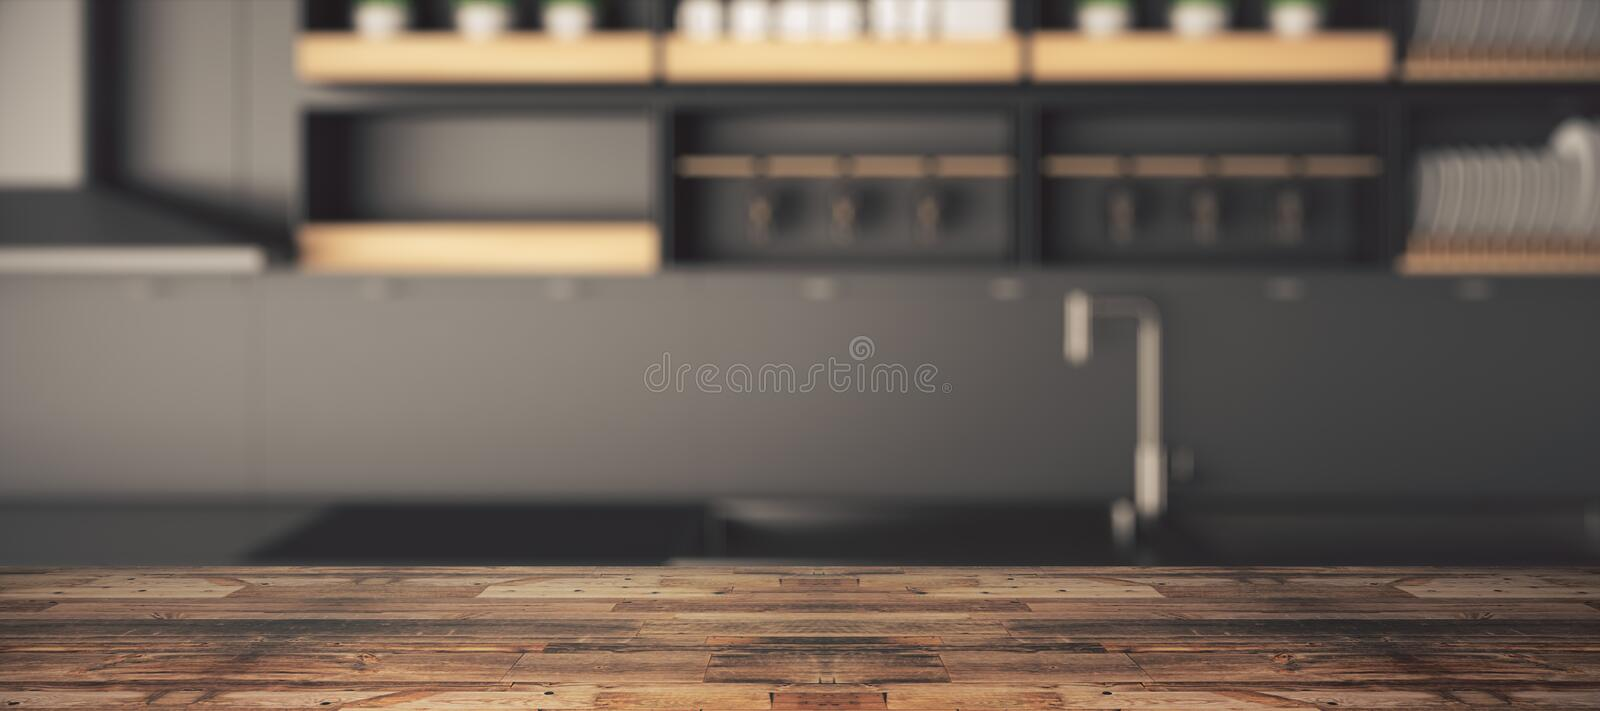 Wooden counter on kitchen wallpaper royalty free illustration